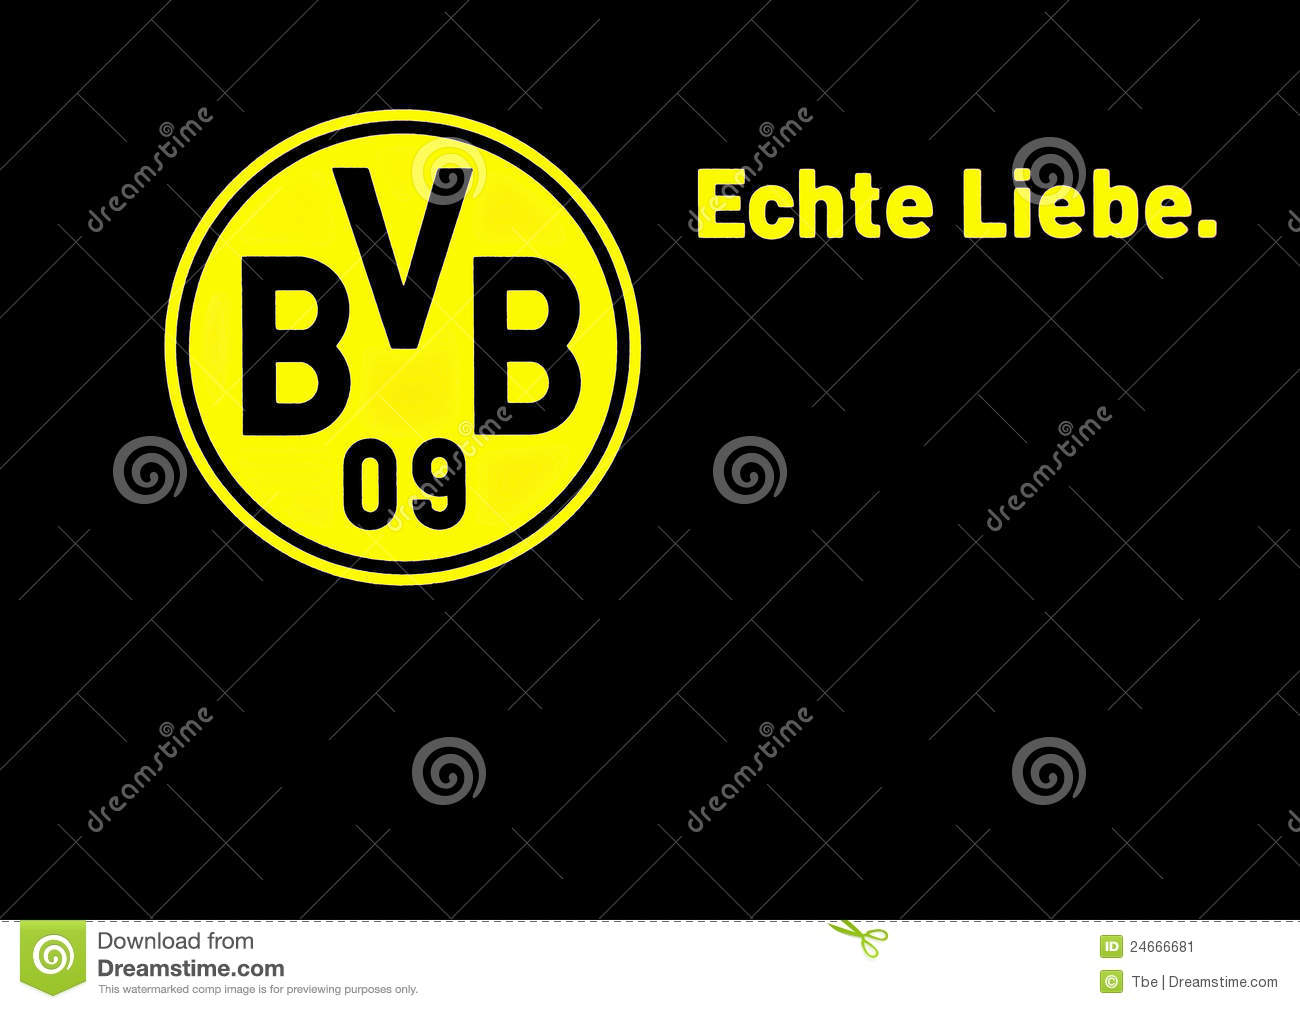 dortmund website english